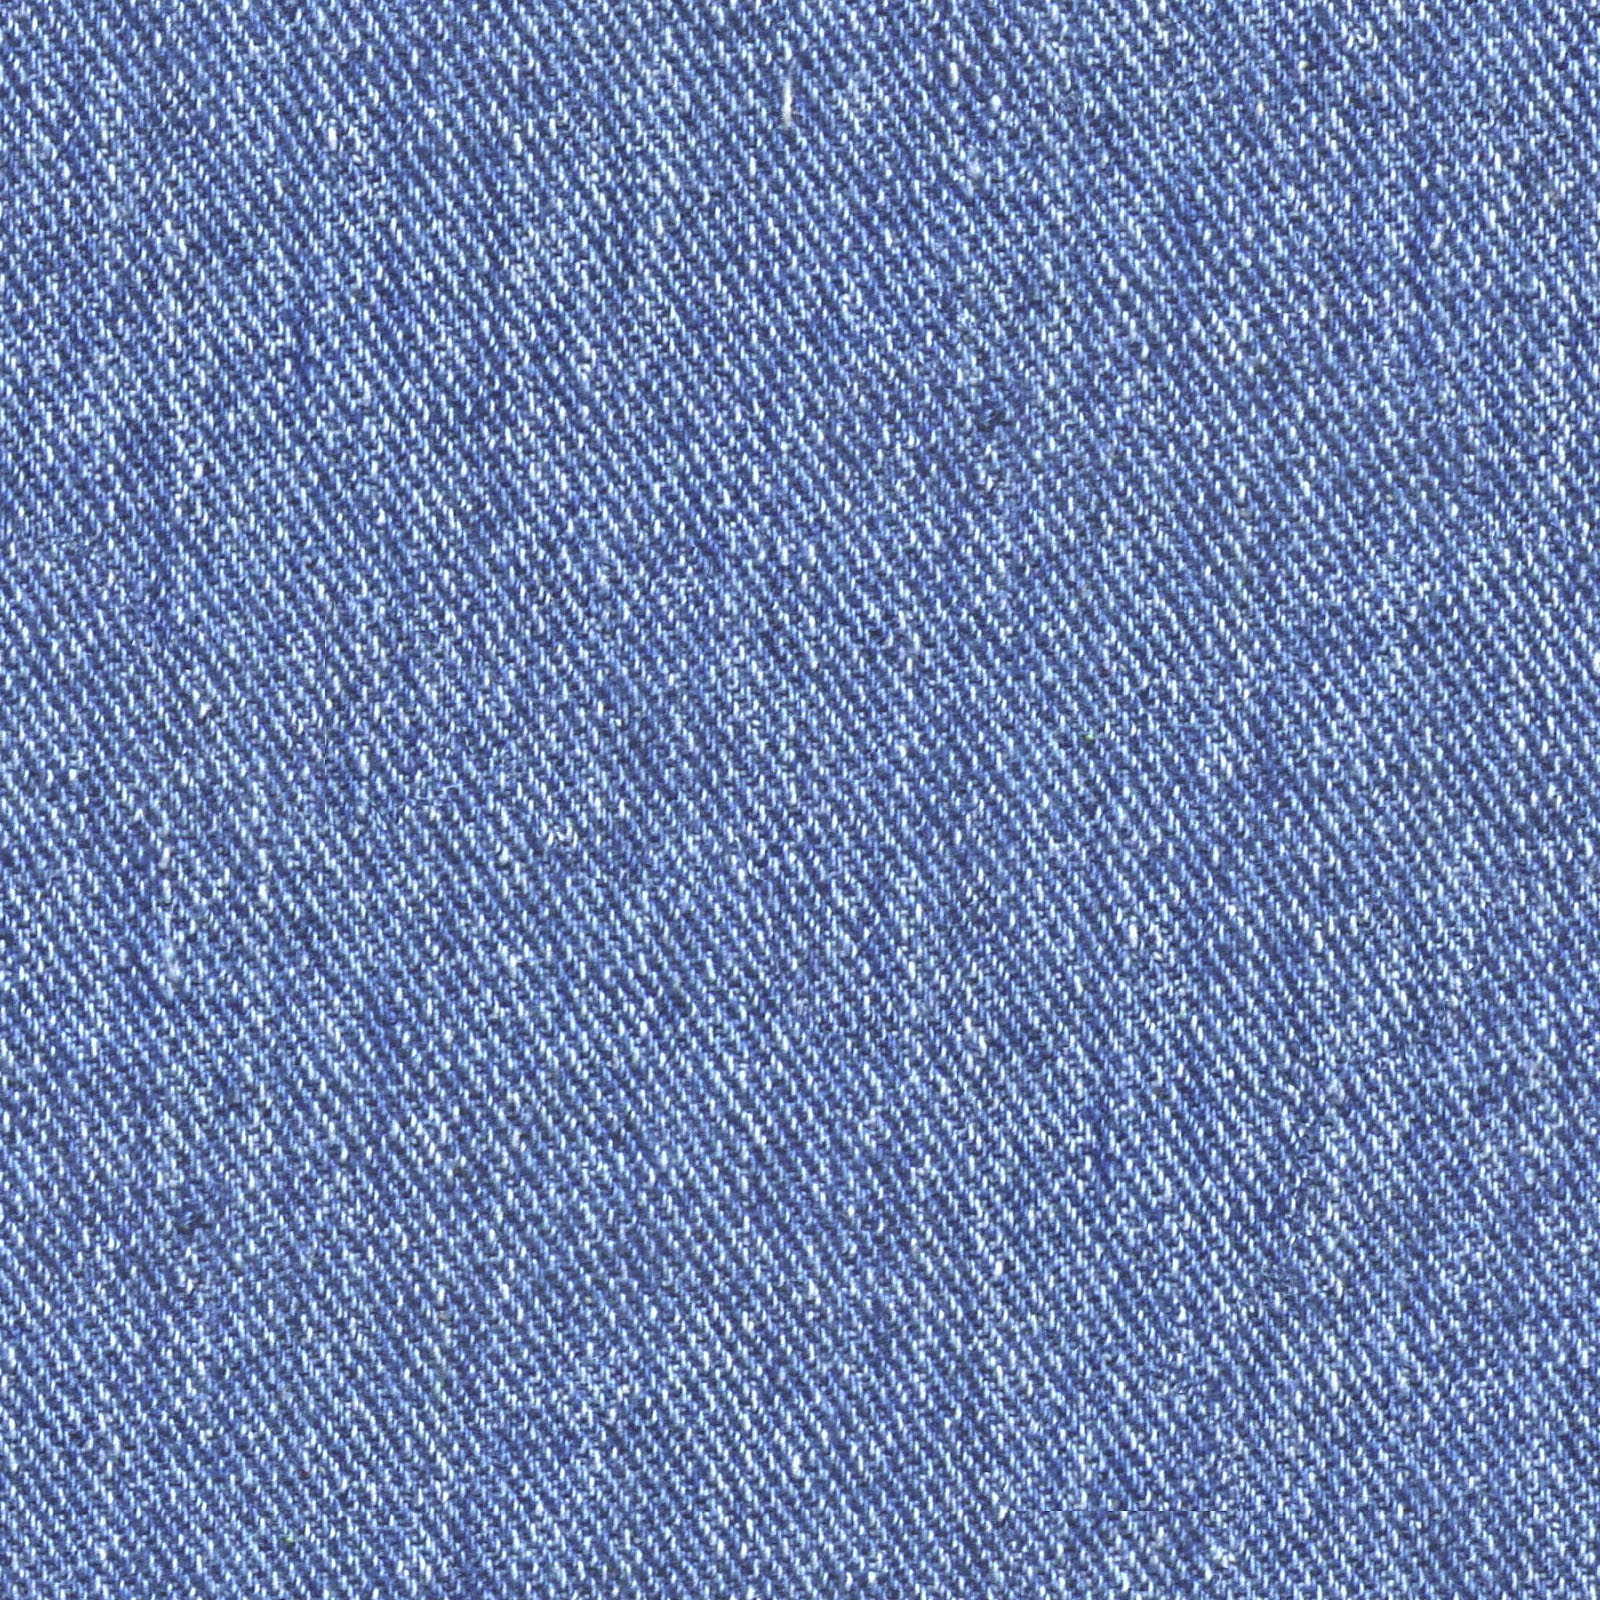 Seamless Blue Denim Texture With Maps Texturise Free